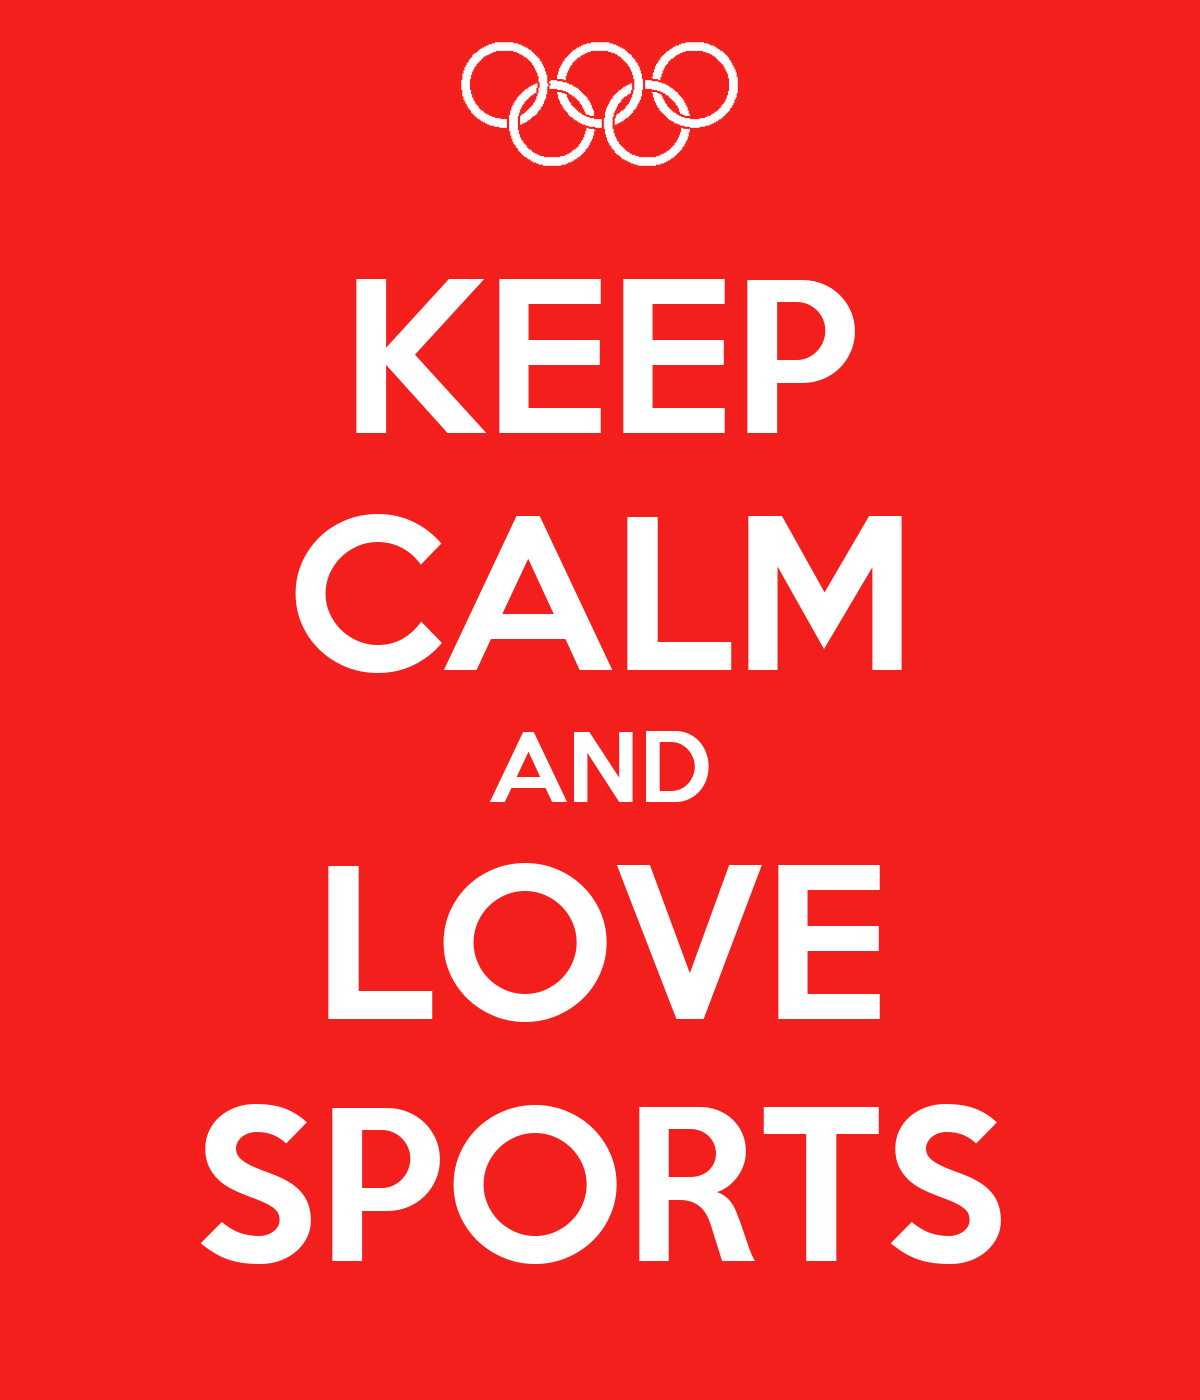 http://sd.keepcalm-o-matic.co.uk/i/keep-calm-and-love-sports-8.png